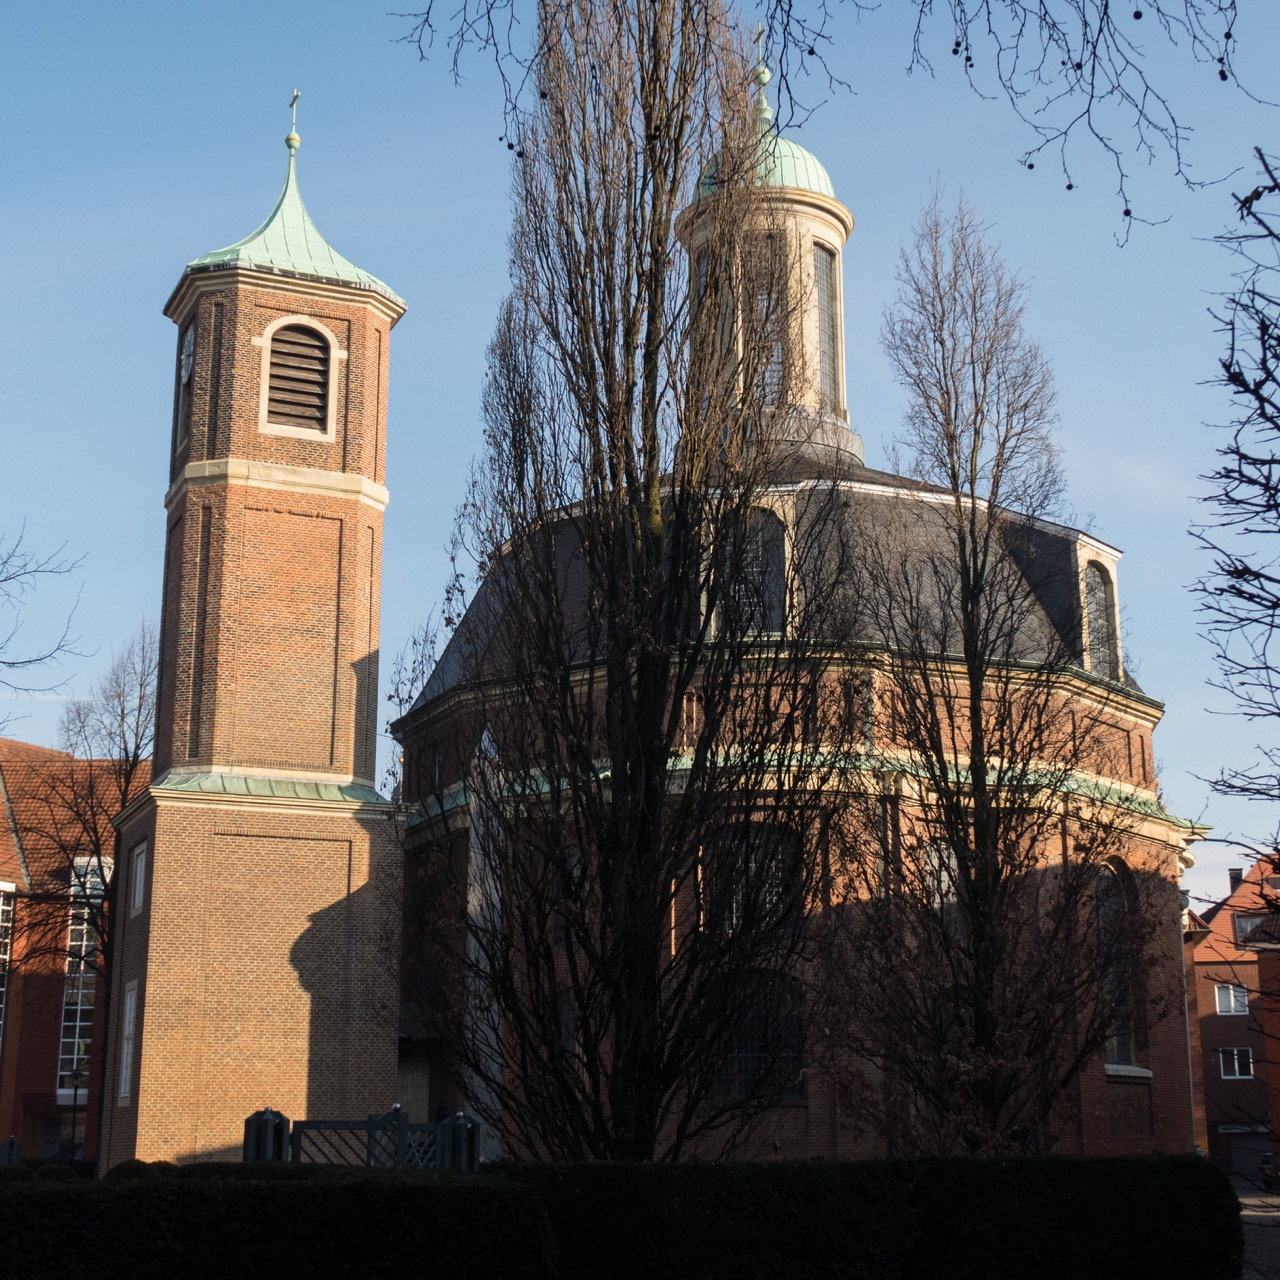 "<a href=""https://www.visit-a-church.info/glossary#Campanile"" target=""_blank"">Campanile</a>"